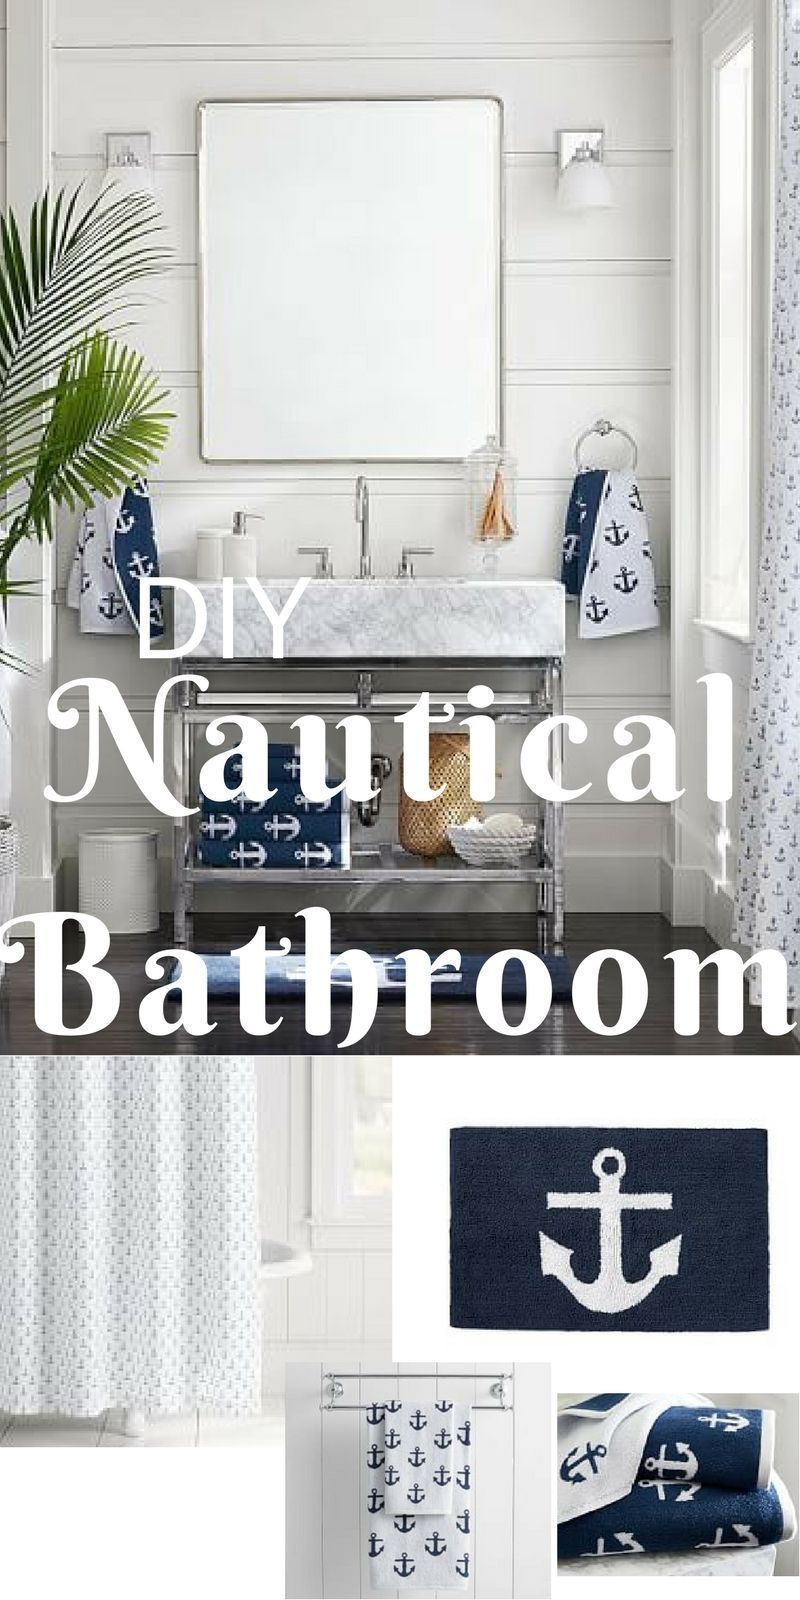 This Is An Simple And Easy Way To Get The Nautical Look In Your Home Anchor Themed Bathroom Decor All From Pottery Nautical Bathroom Decor Coastal Decor Decor